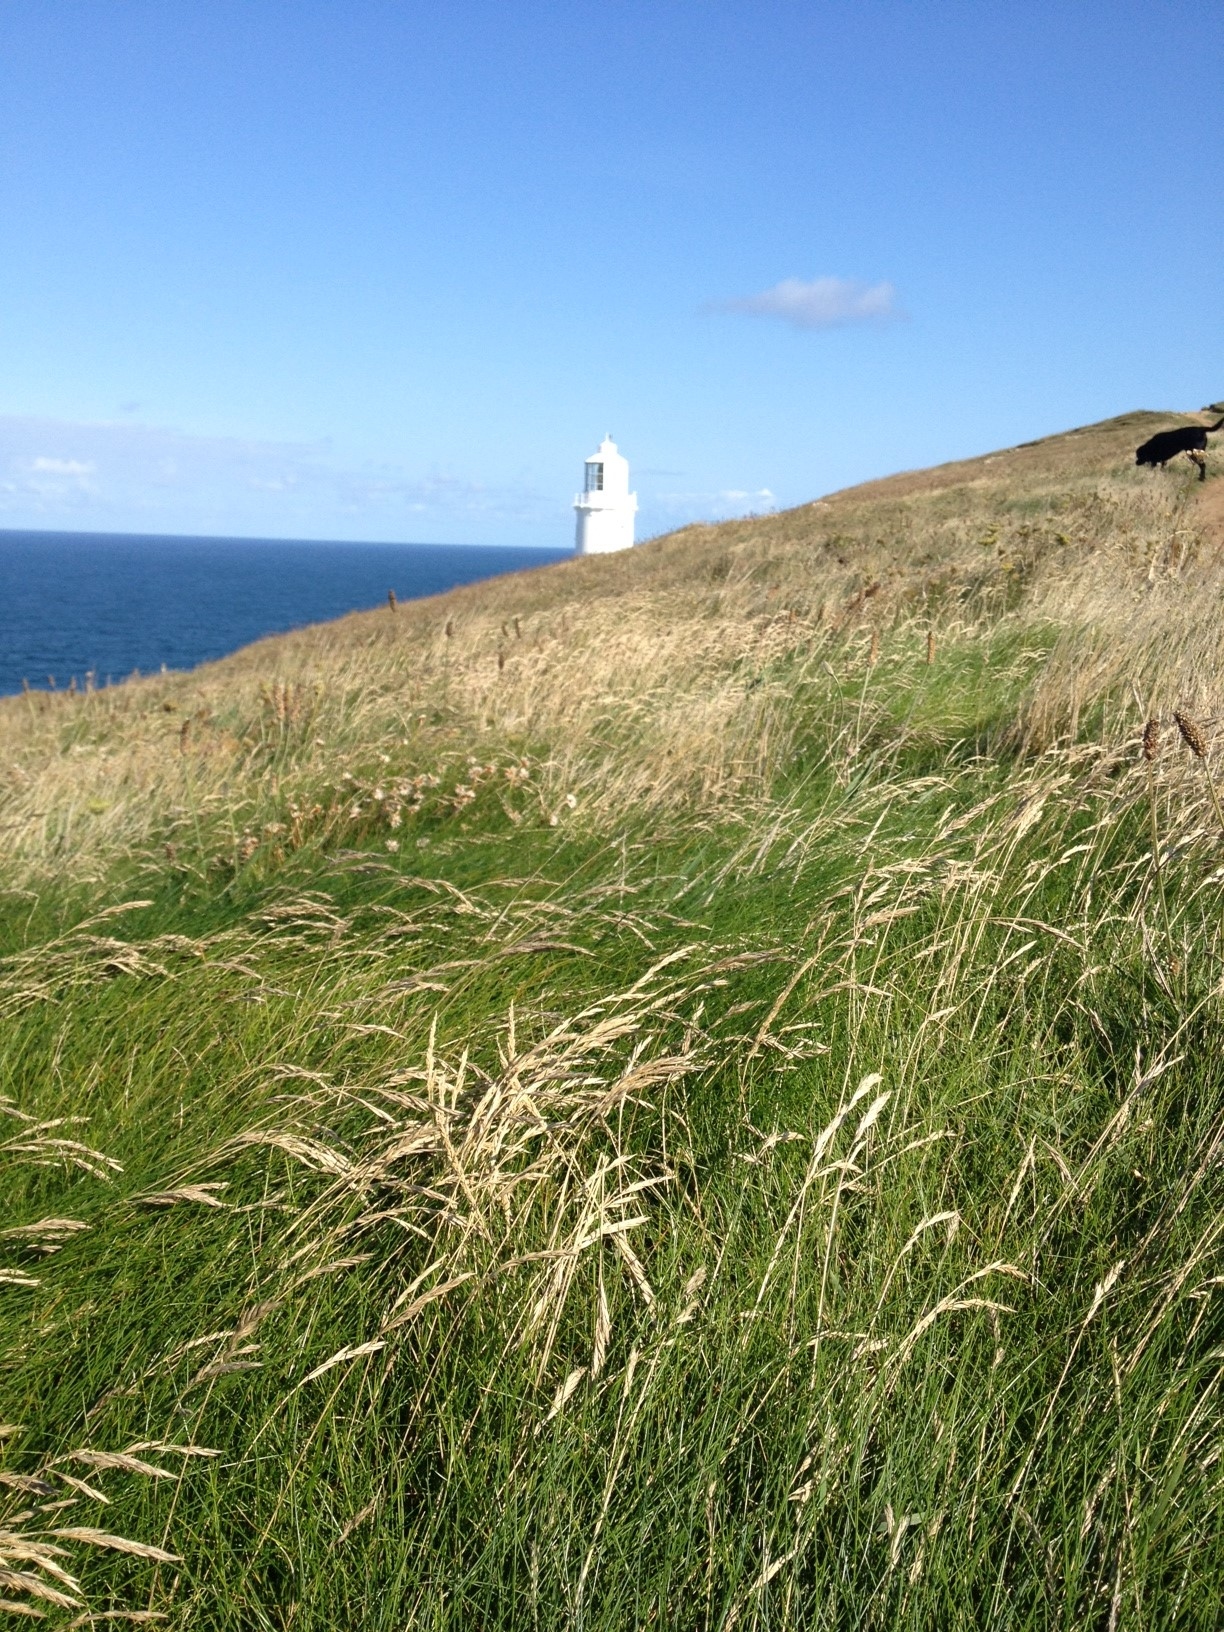 Seeded grasses blow in the wind below Trevose Head lighthouse